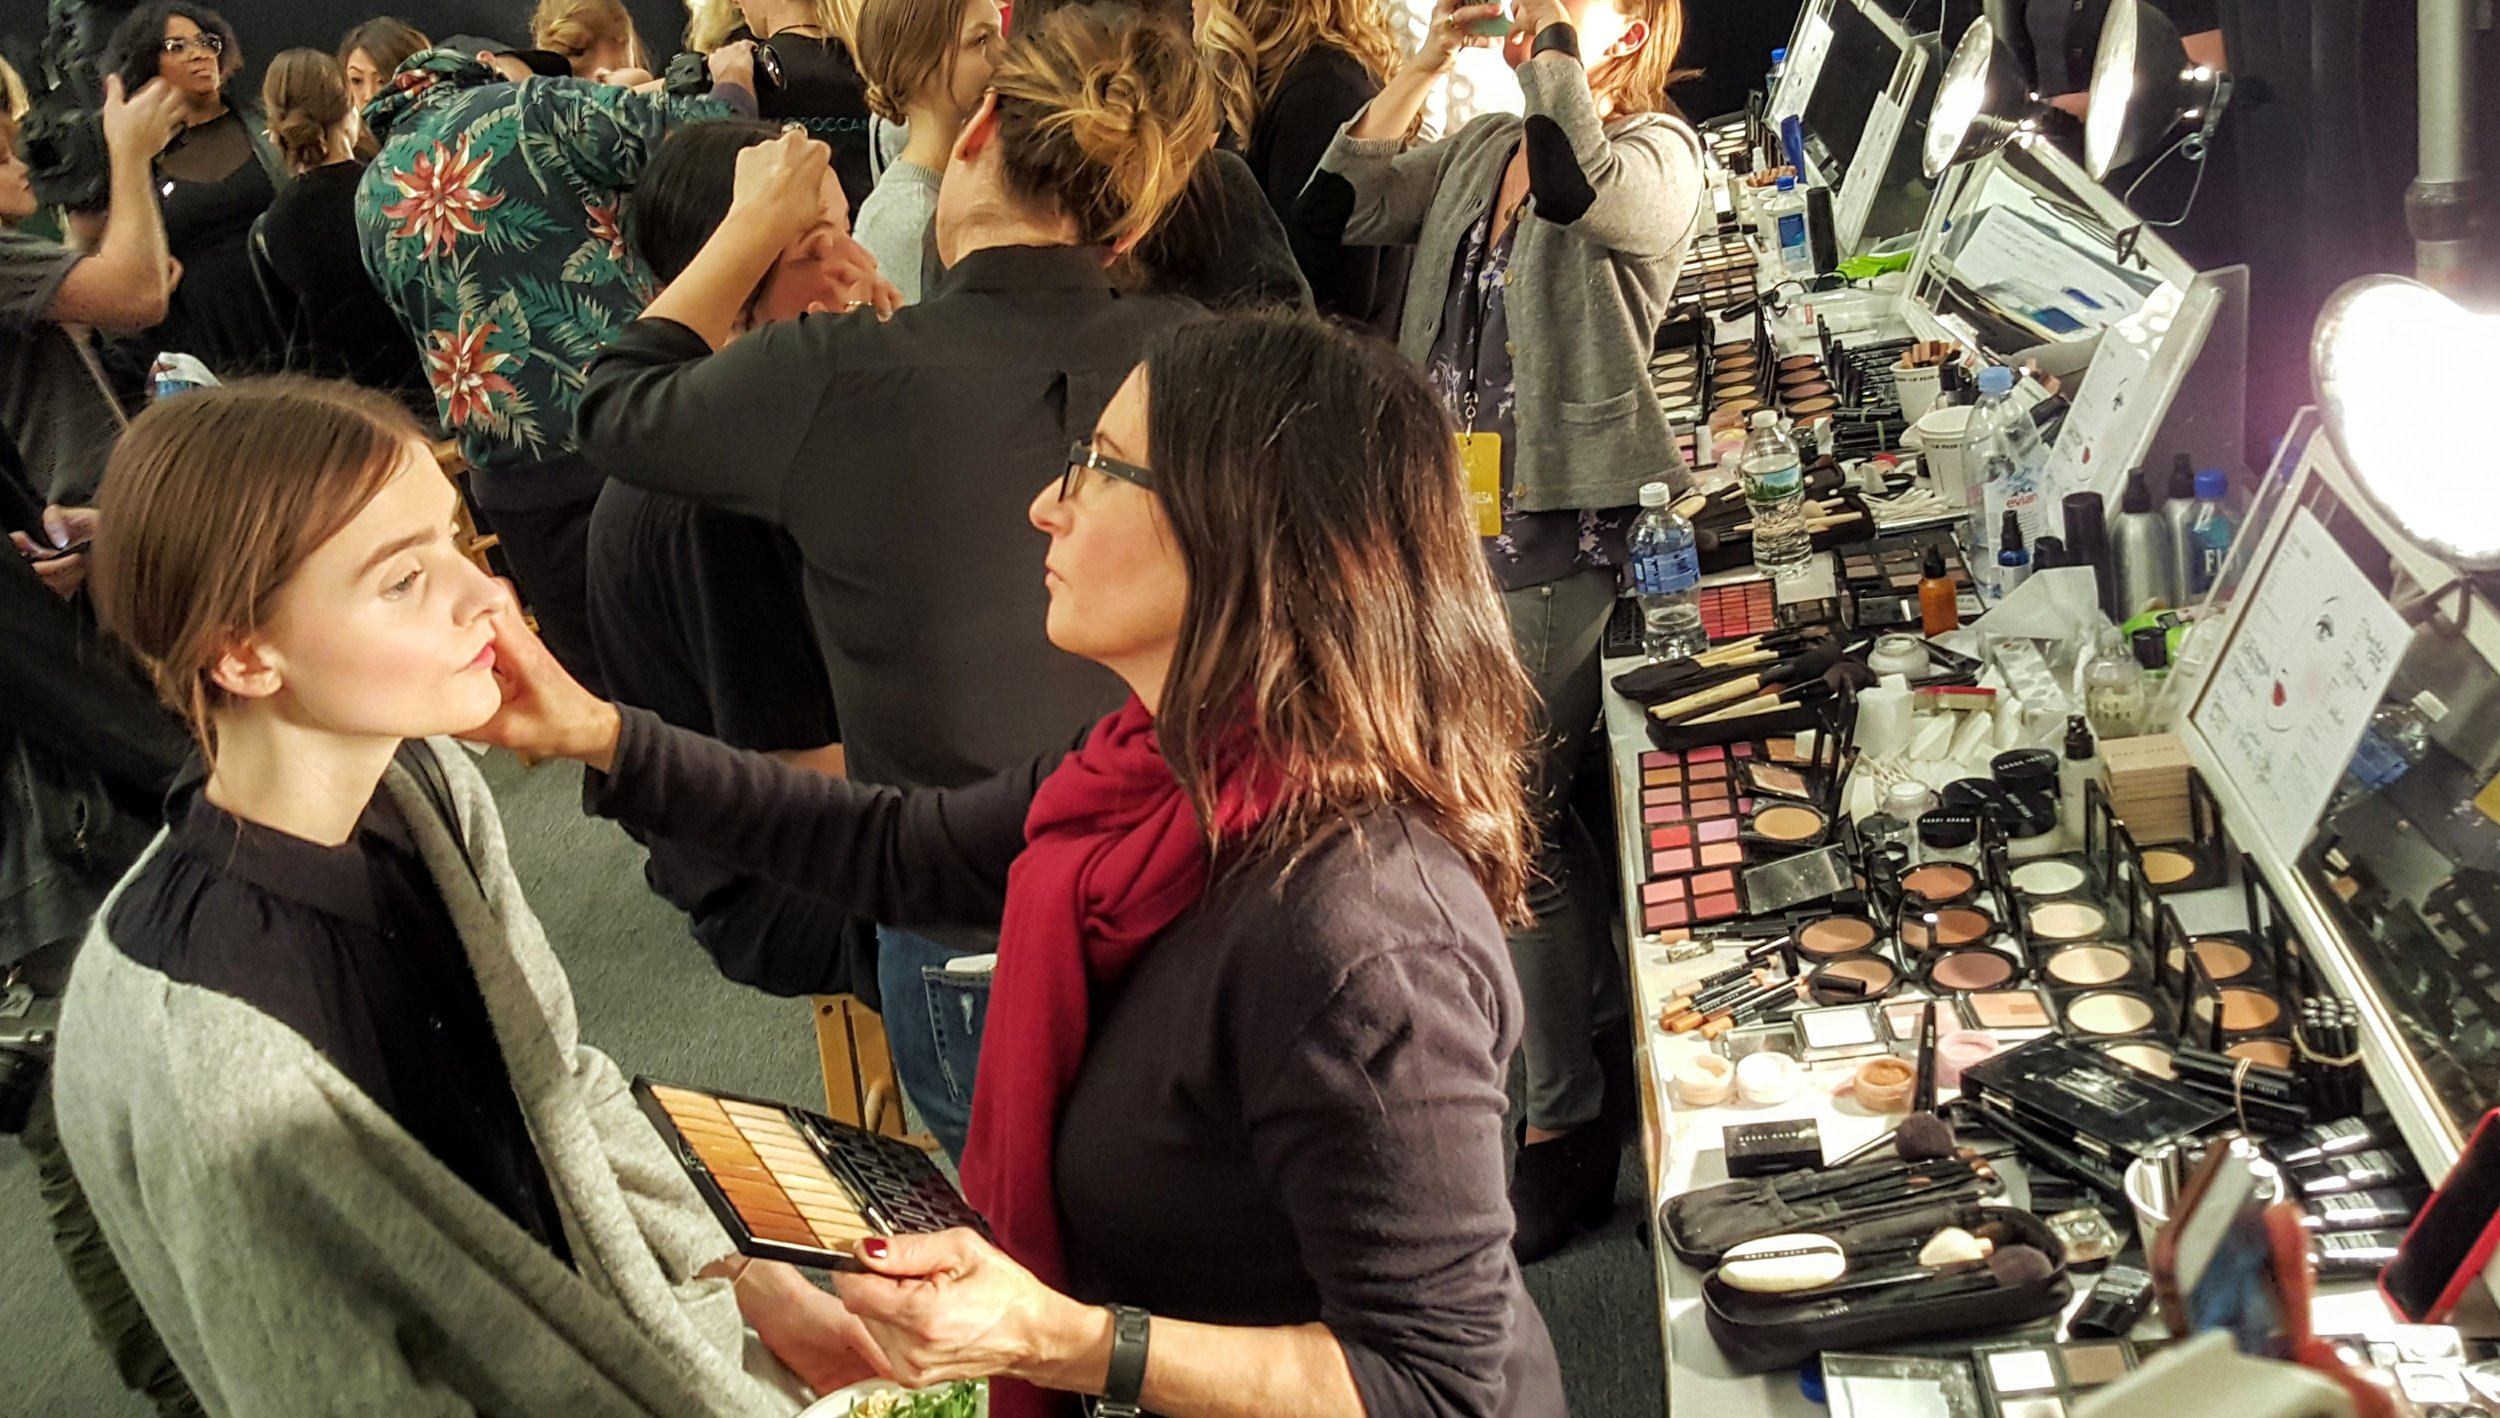 Ms. Brown, applying the very soft make-up look on one of the Marchesa models - so exciting!